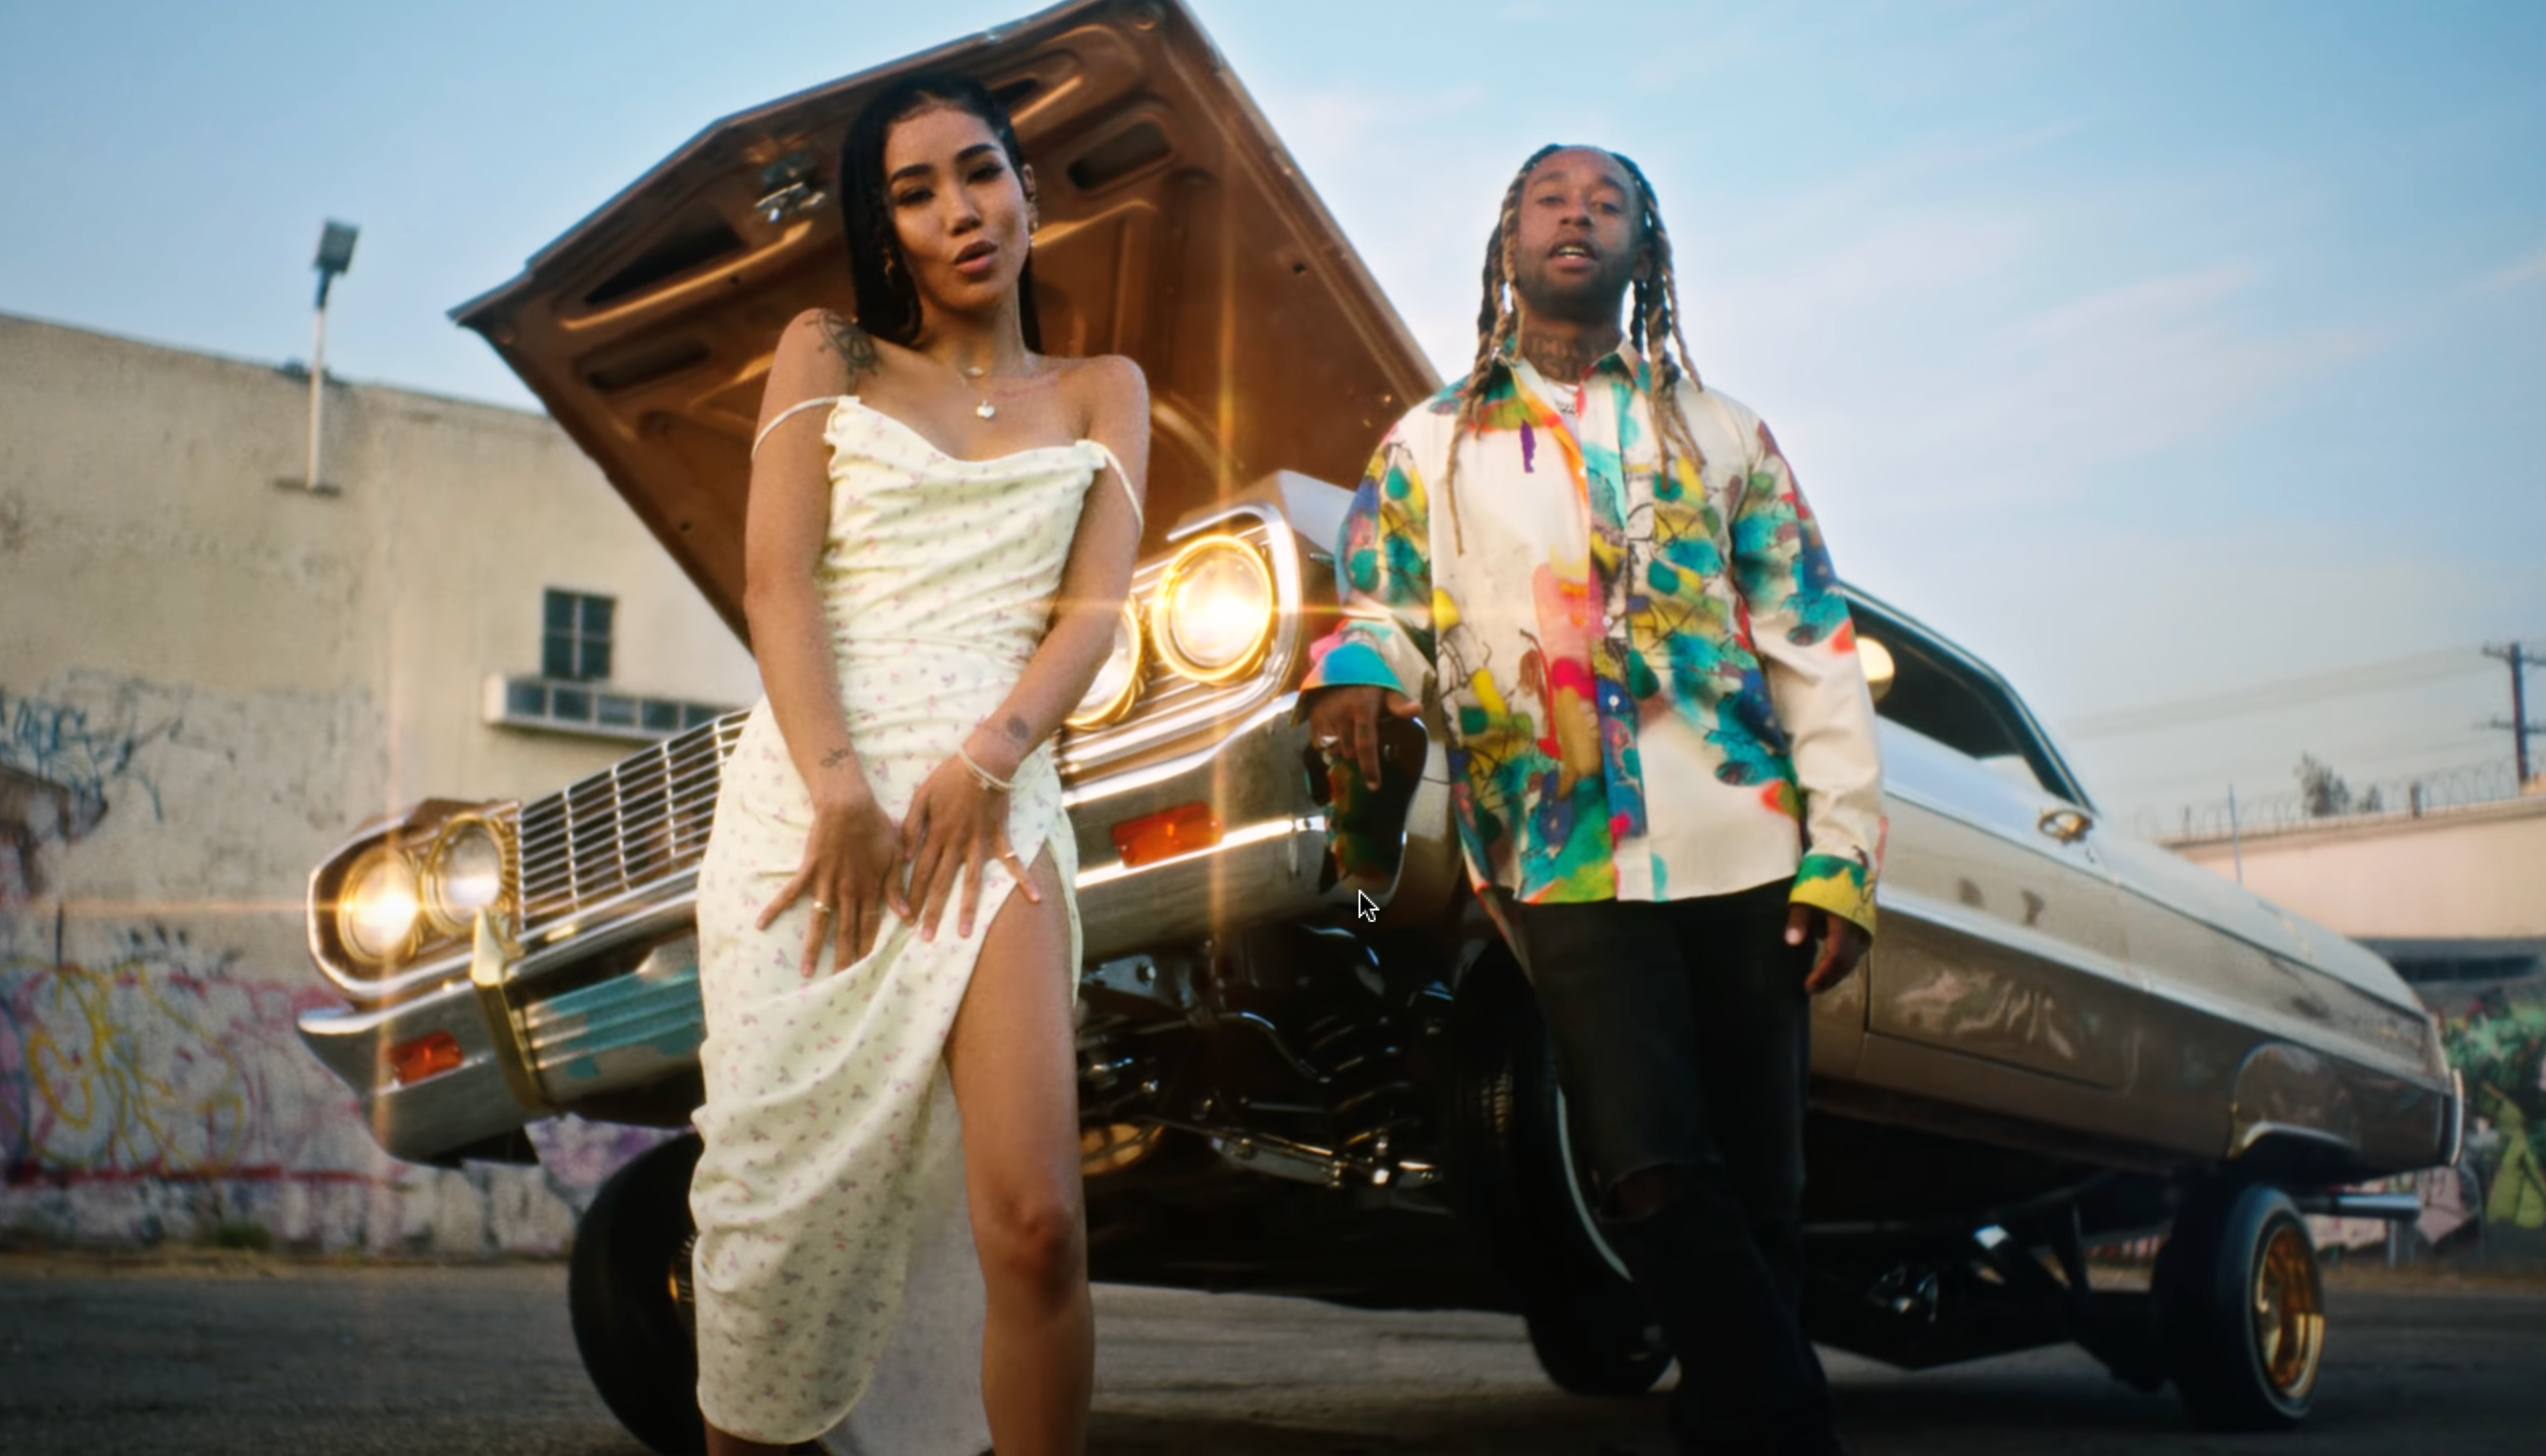 Jhené Aiko and Ty Dolla $ign